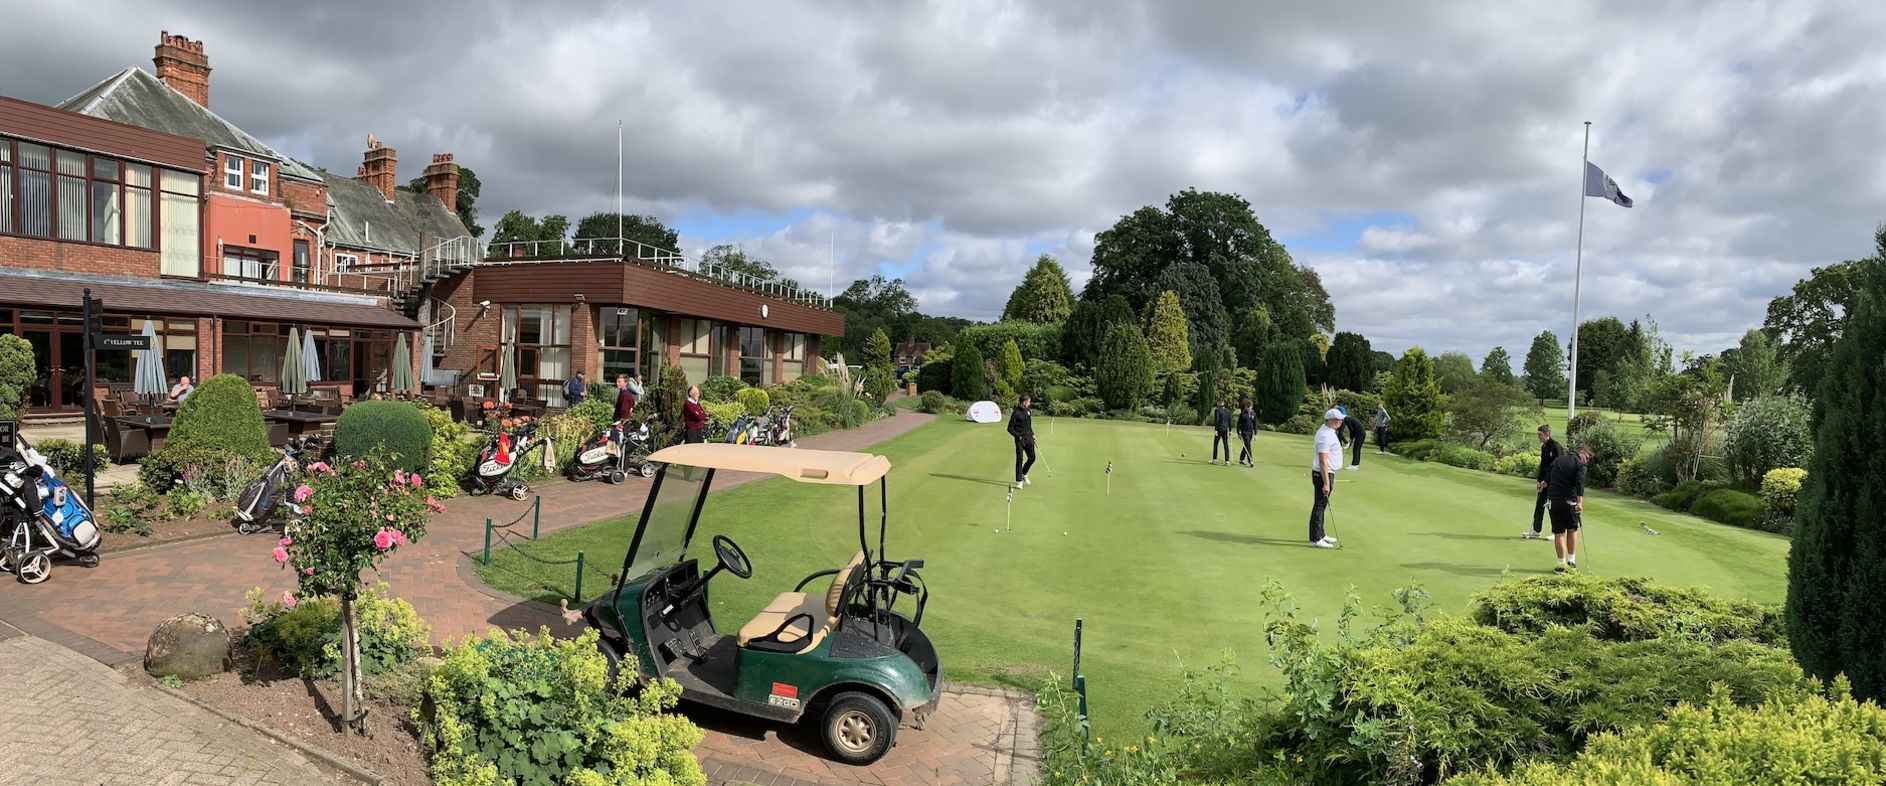 Kings Norton GC to host Boys & Girls Achievement Awards on 5th January 2020